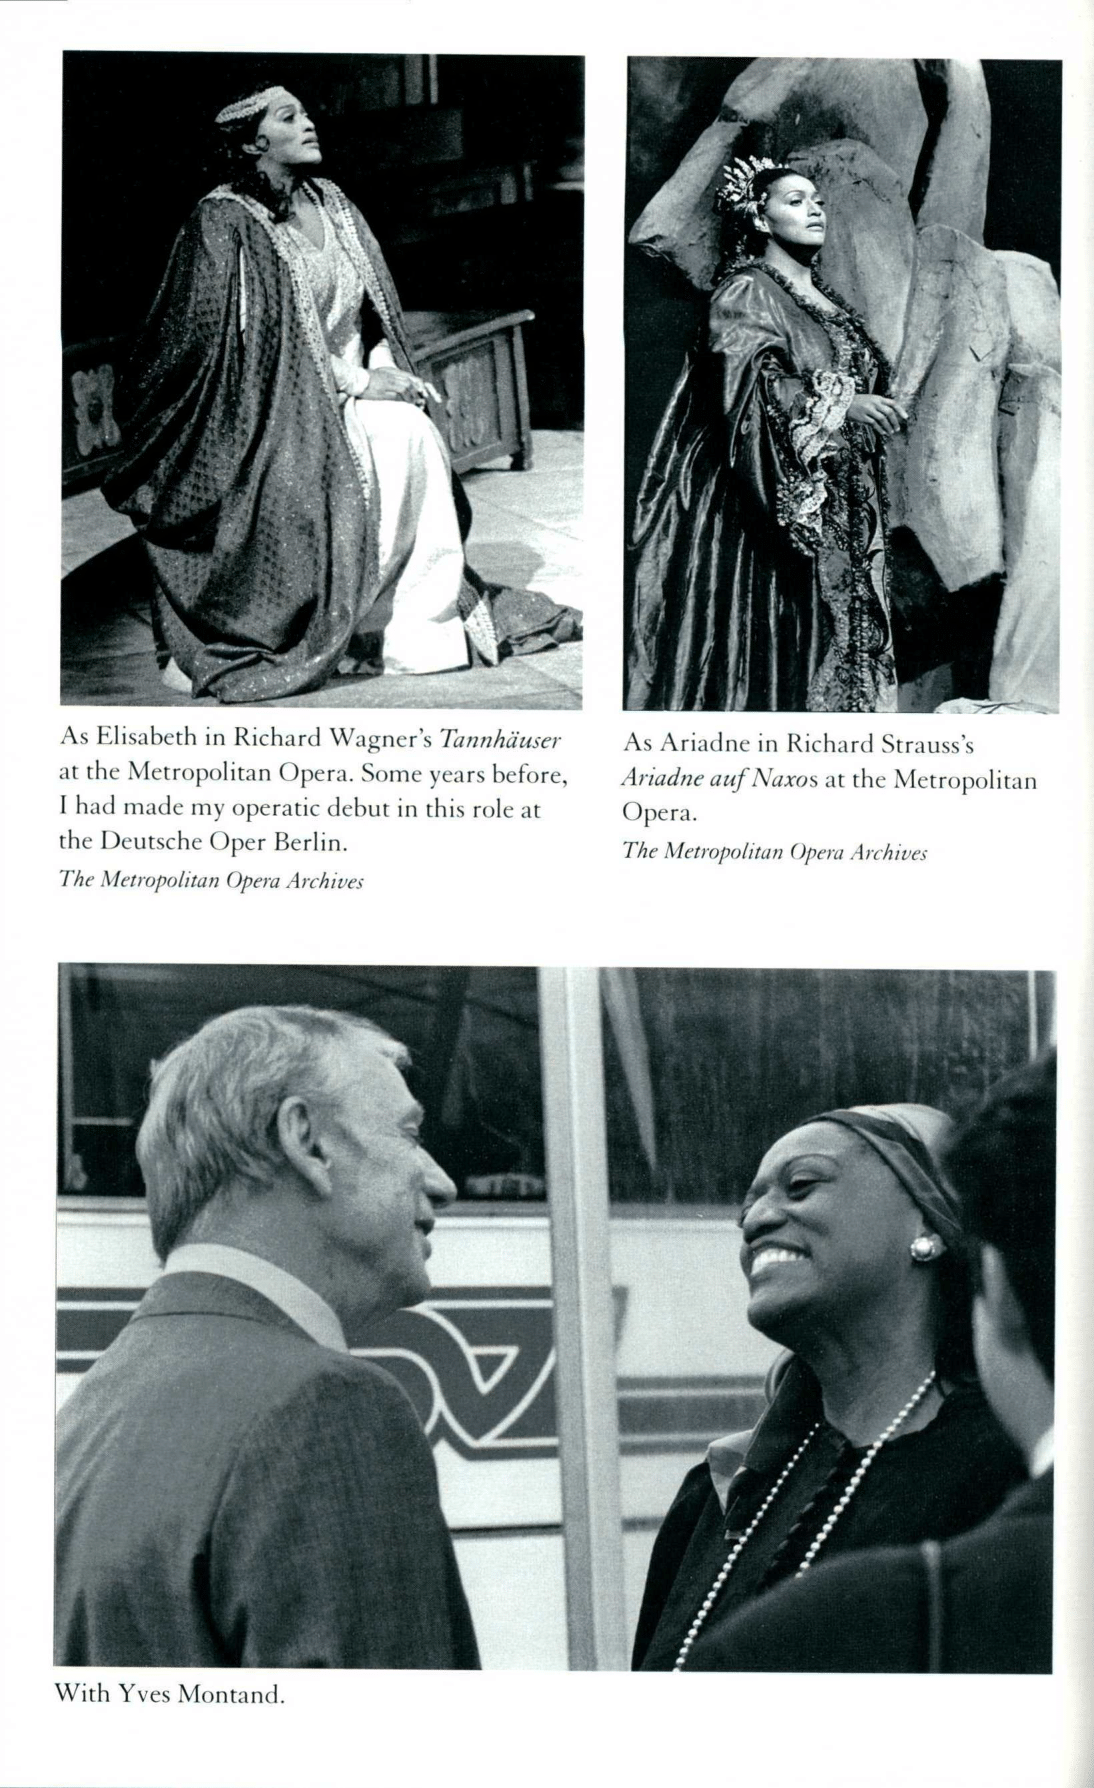 Three photos. Jessye Norman as Elisabeth and Ariadne and a final photo with Yves Montand